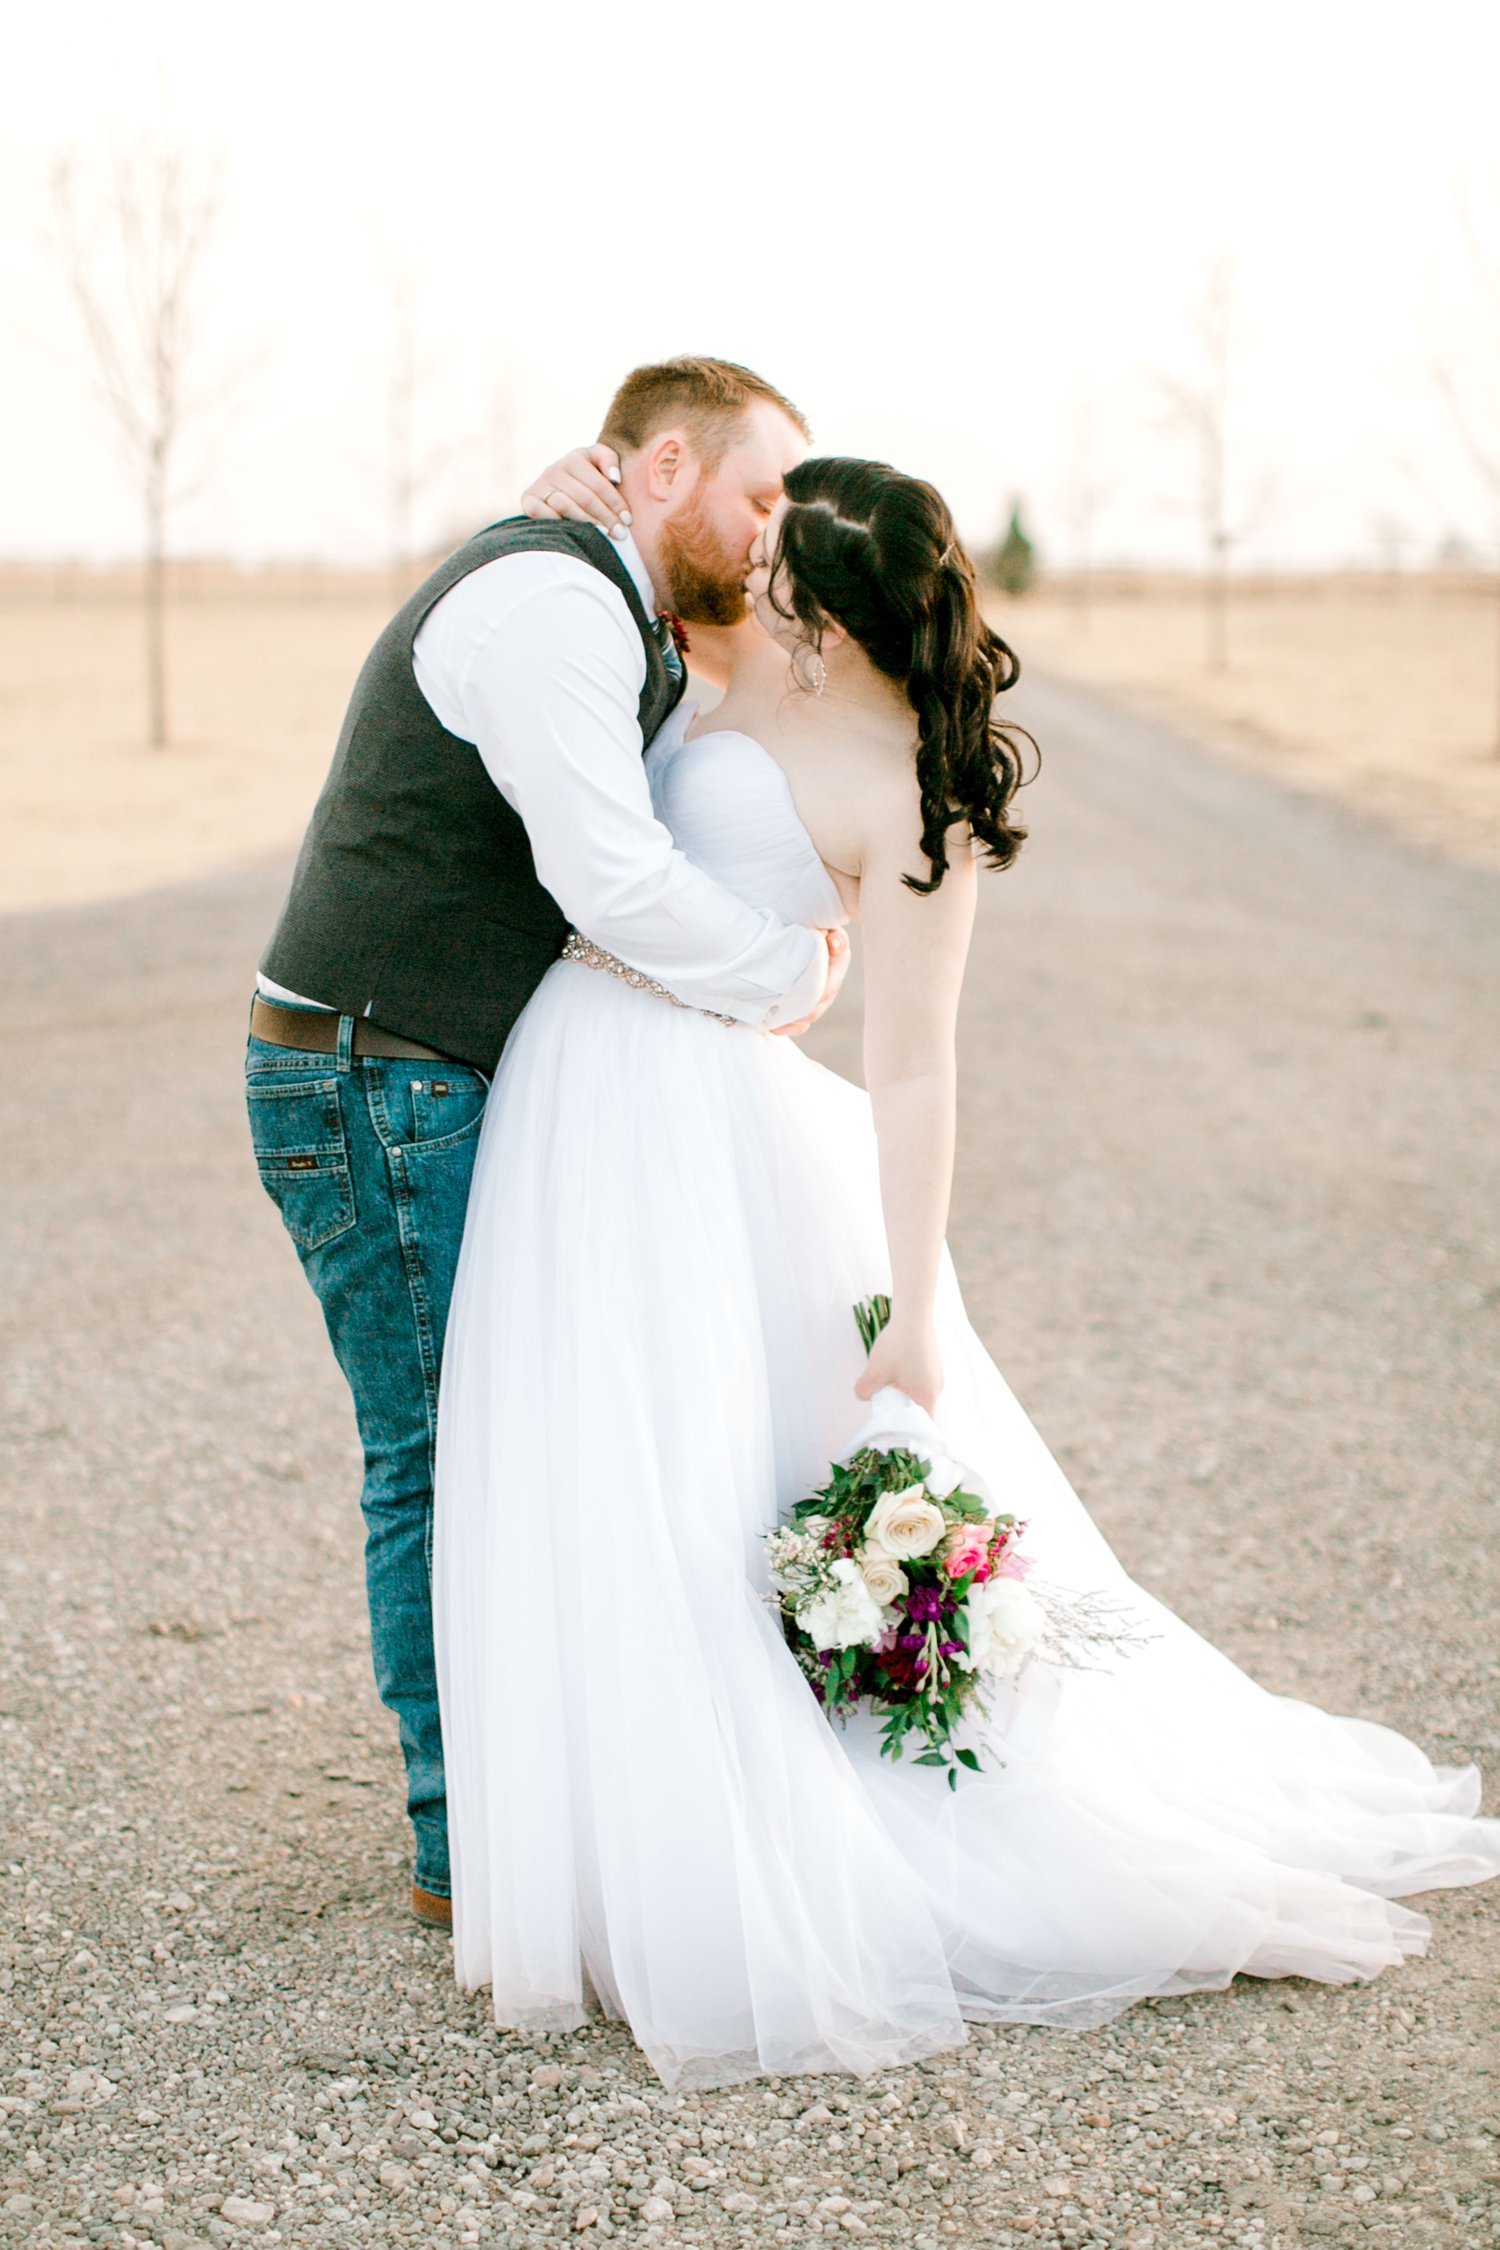 Autumn-Oaks-Events-Morgan-Andy-Lane-Wedding-Lubbock-Photography__0092.jpg